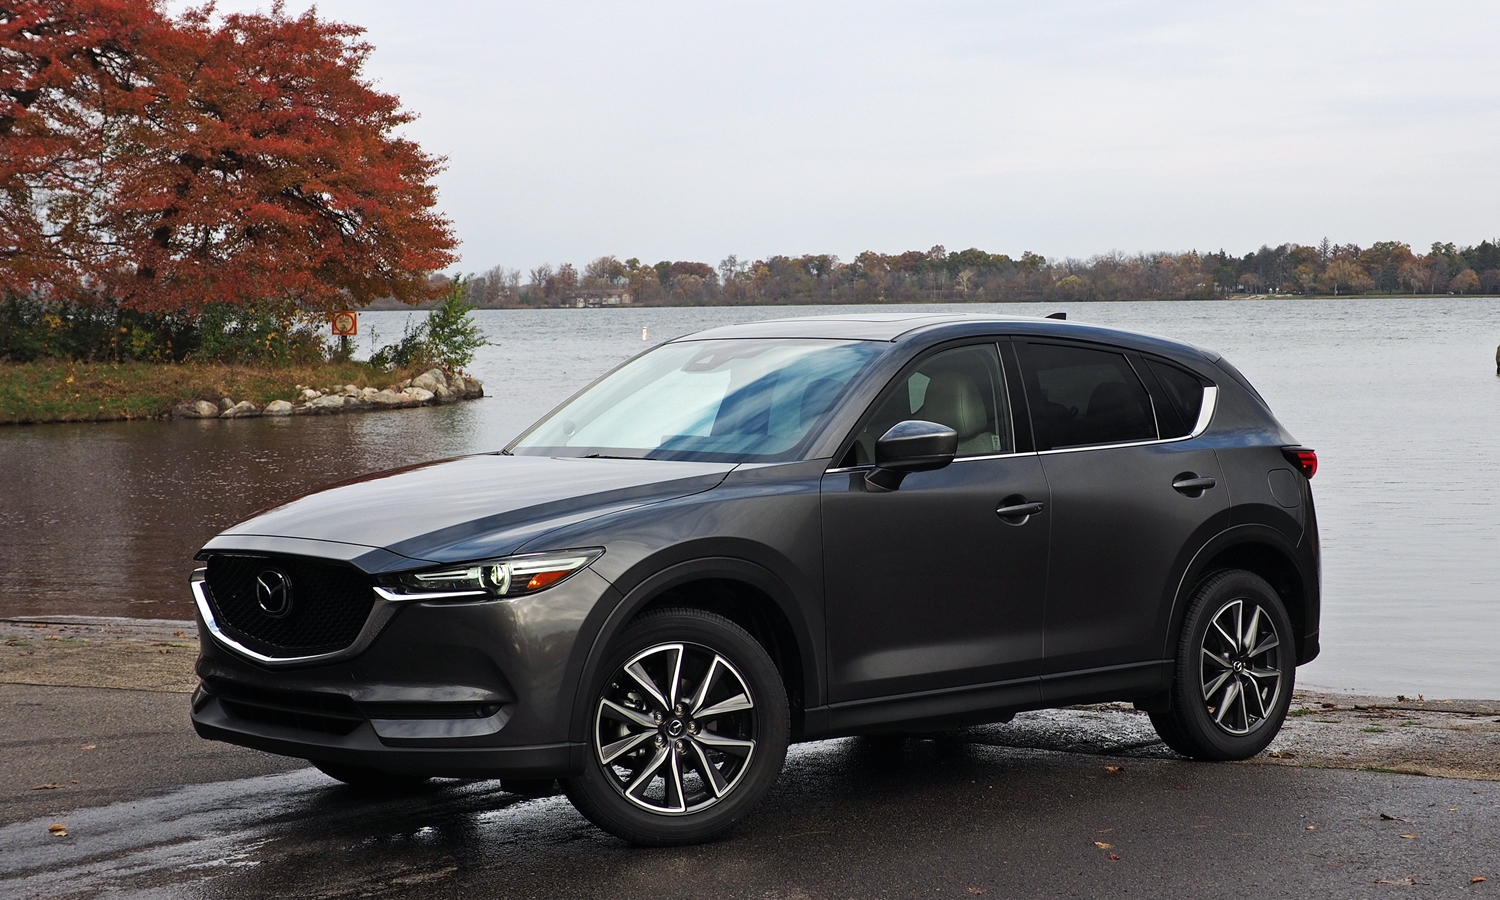 2017 Mazda CX-5 front quarter view